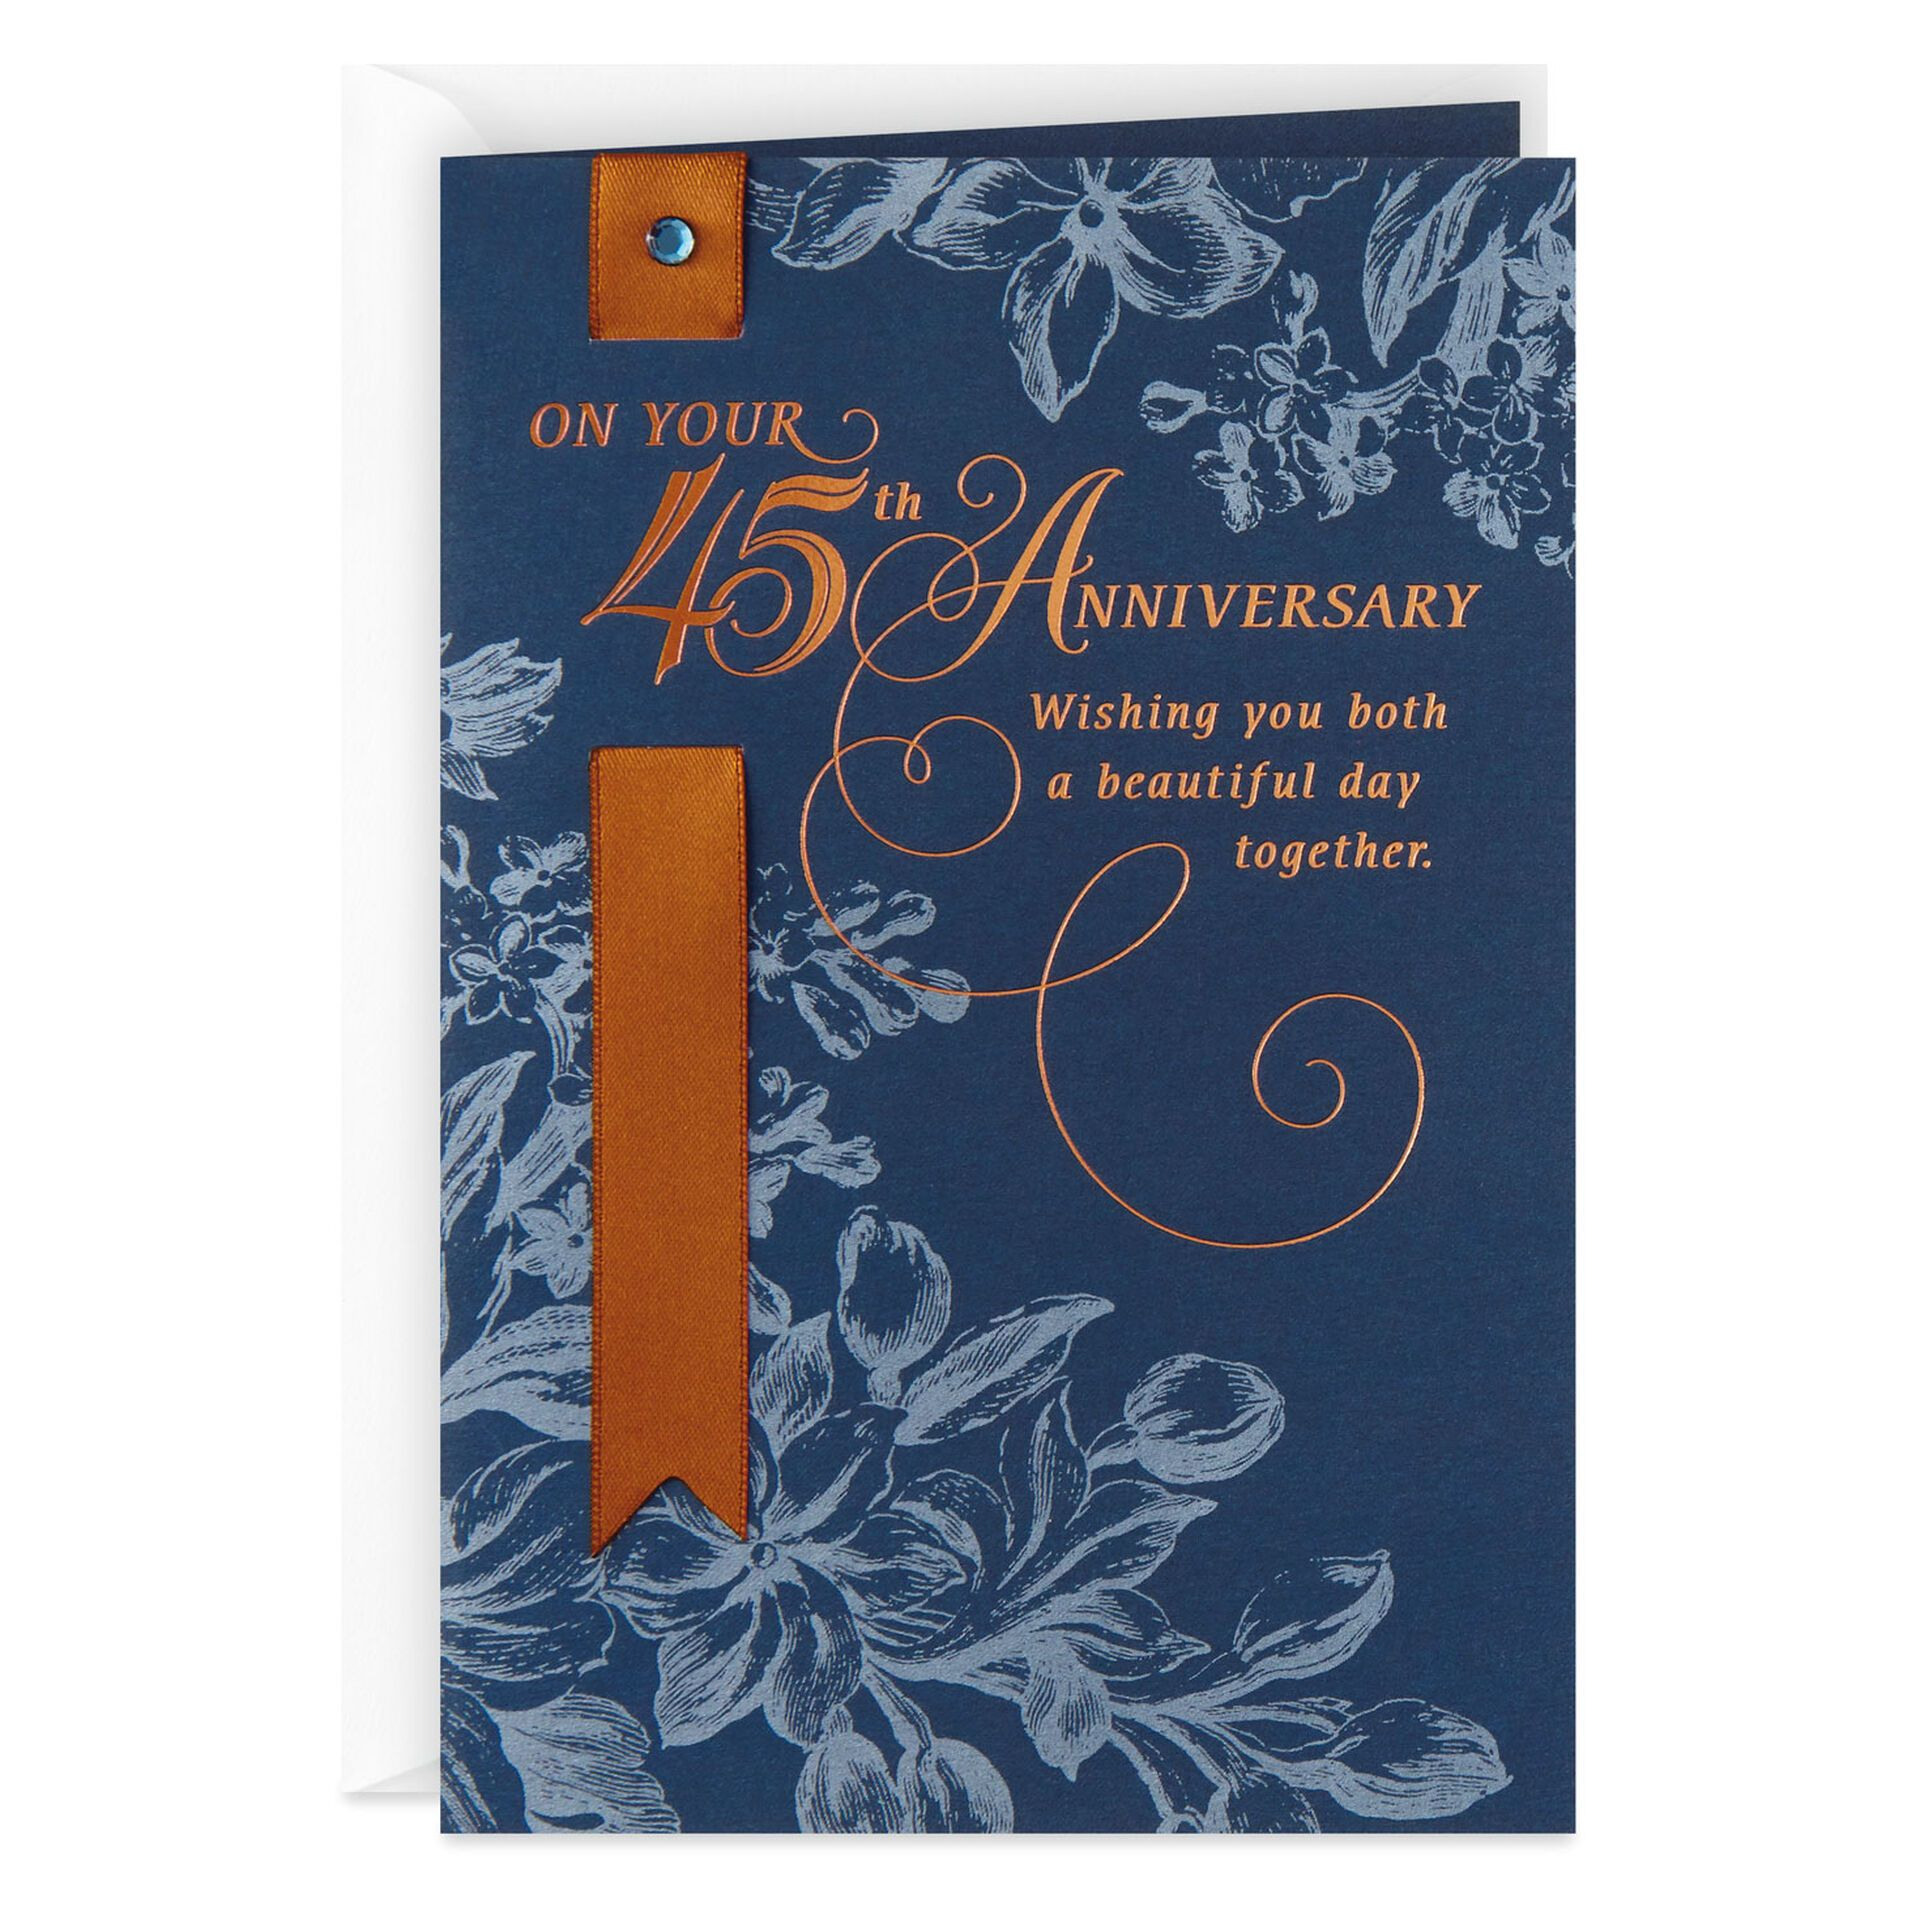 Enjoy Your Day 45th Anniversary Card Greeting Cards Hallmark Anniversary Cards Hallmark Greeting Cards 45th Anniversary